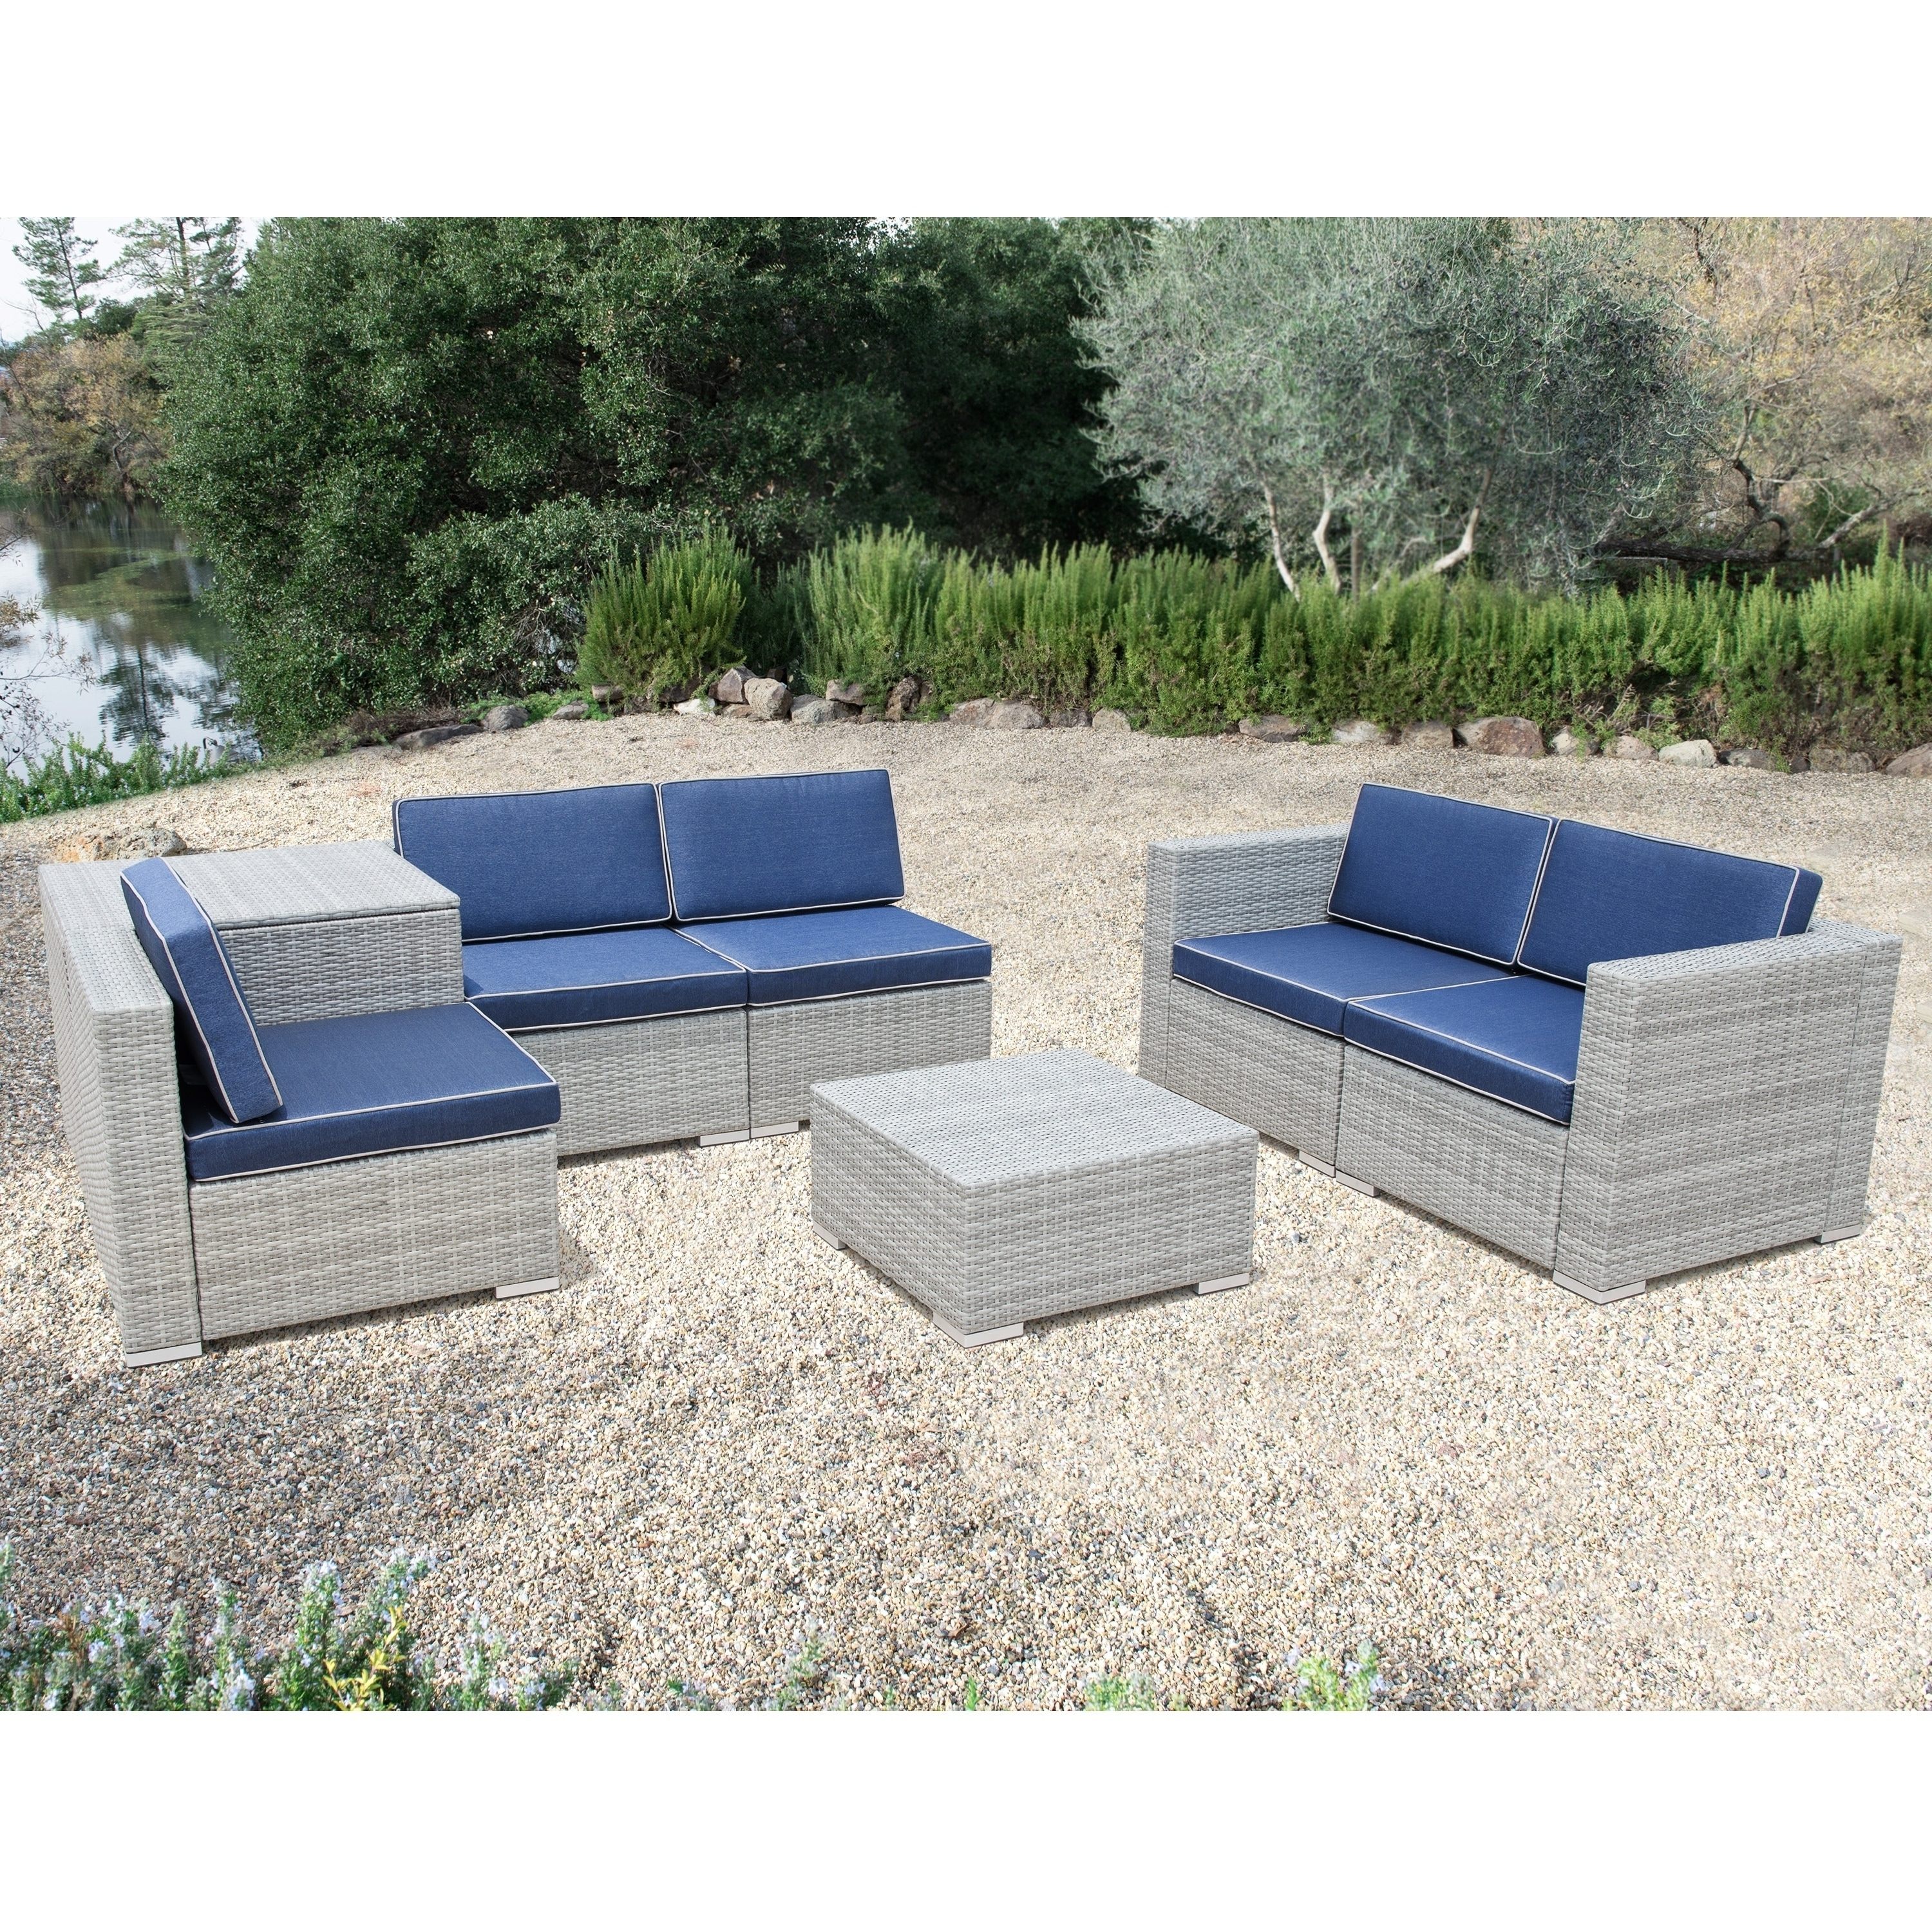 Popular Shop Corvus Bologna 7 Piece Grey Wicker Patio Furniture Set With Intended For Patio Conversation Sets With Storage (View 8 of 15)